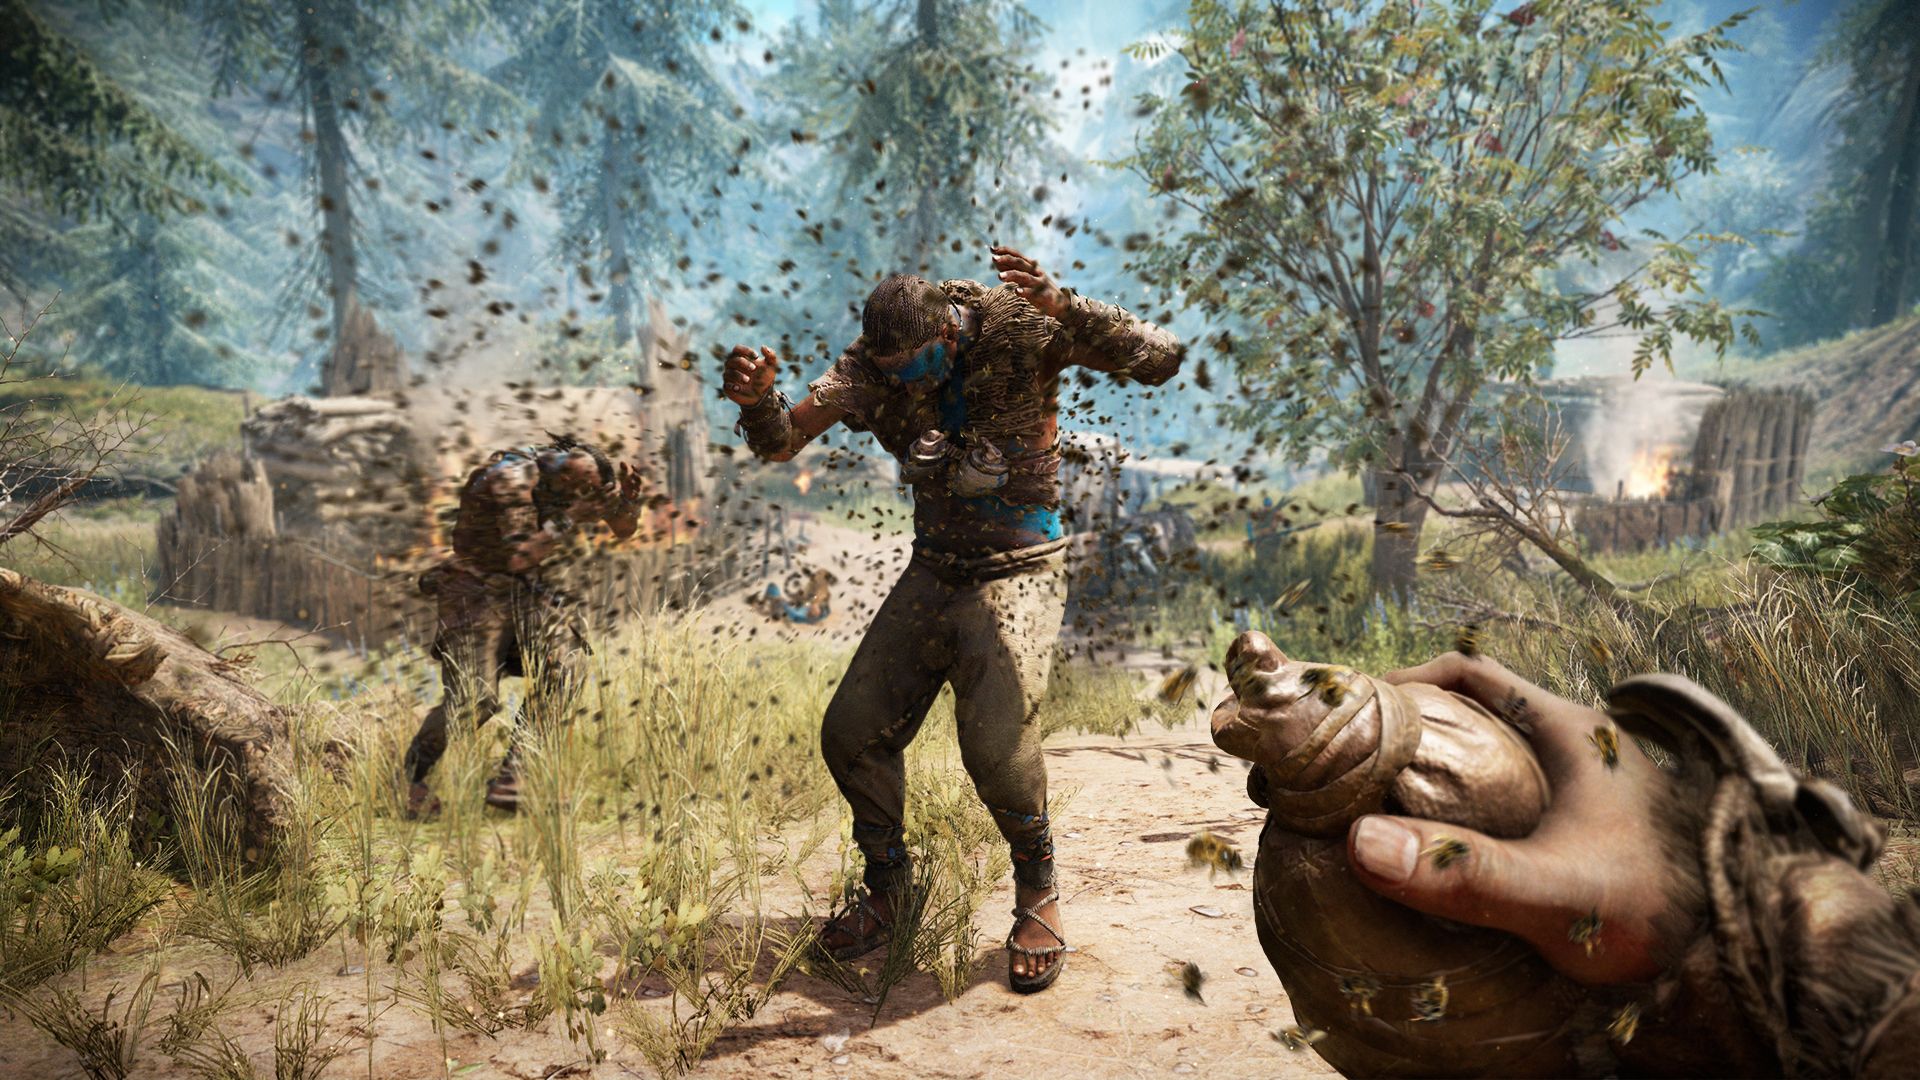 Far cry 4 trainer (pc, ps3/4, xbox 360/one) | hacksbook.